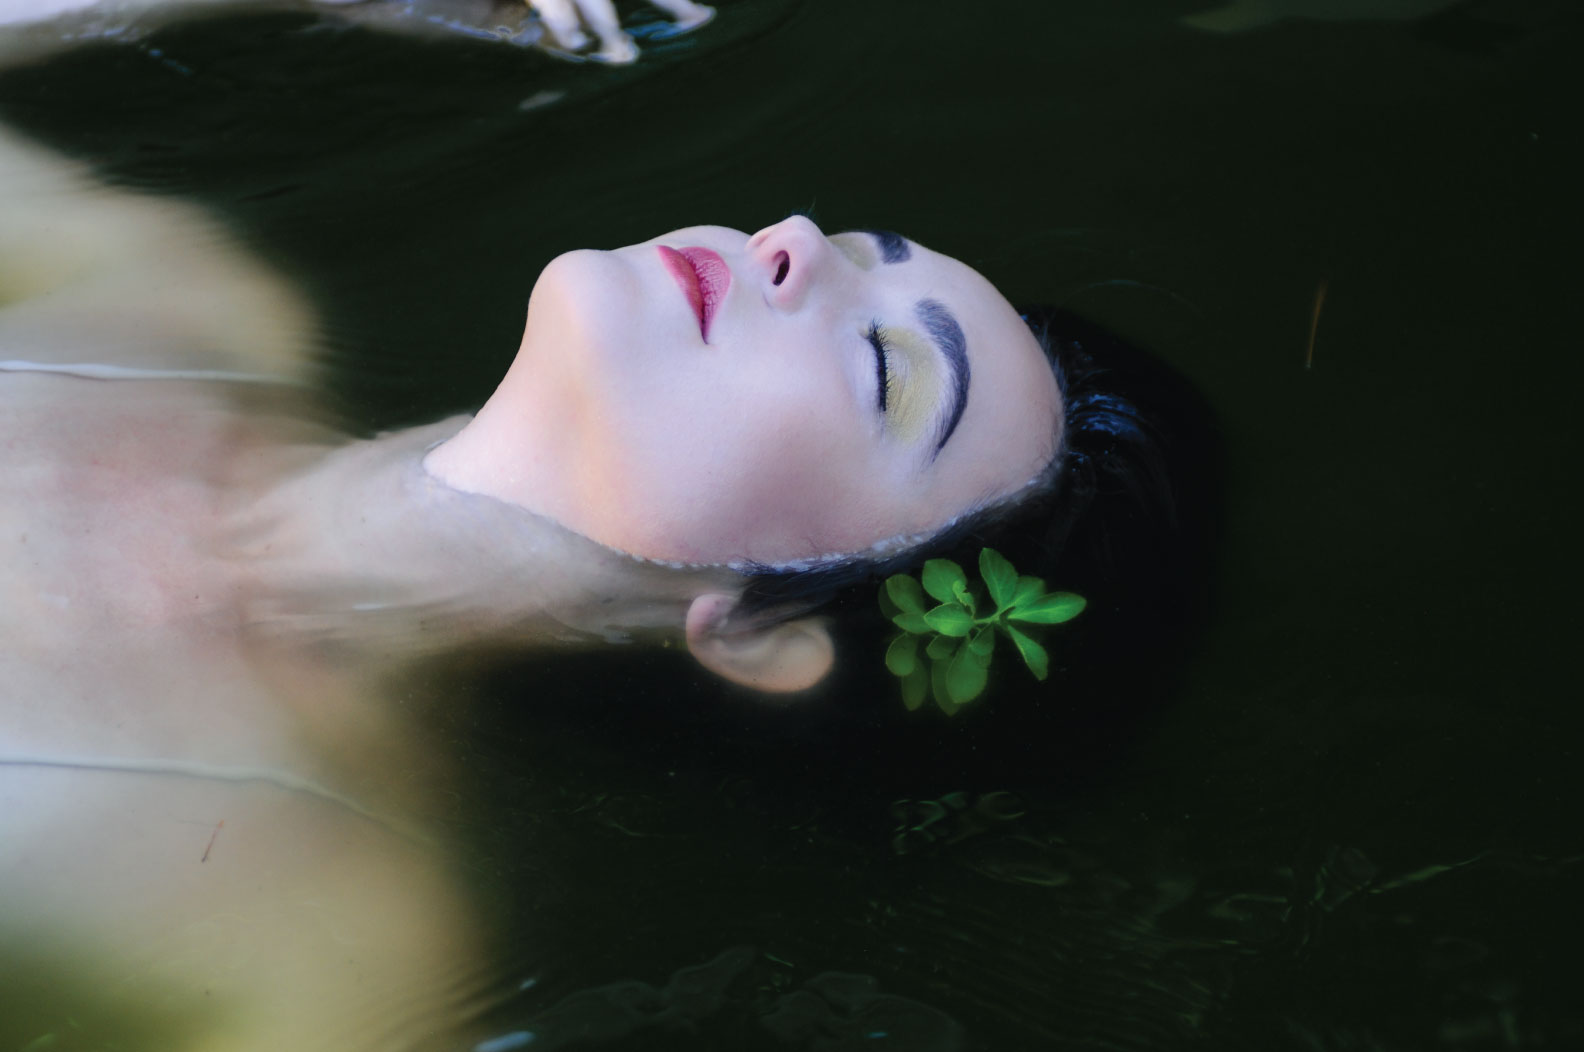 aphrodite, greek goddess, water shoot, woman, water photo shoot, natural portrait, beautiful portrait, awakening mother earth,